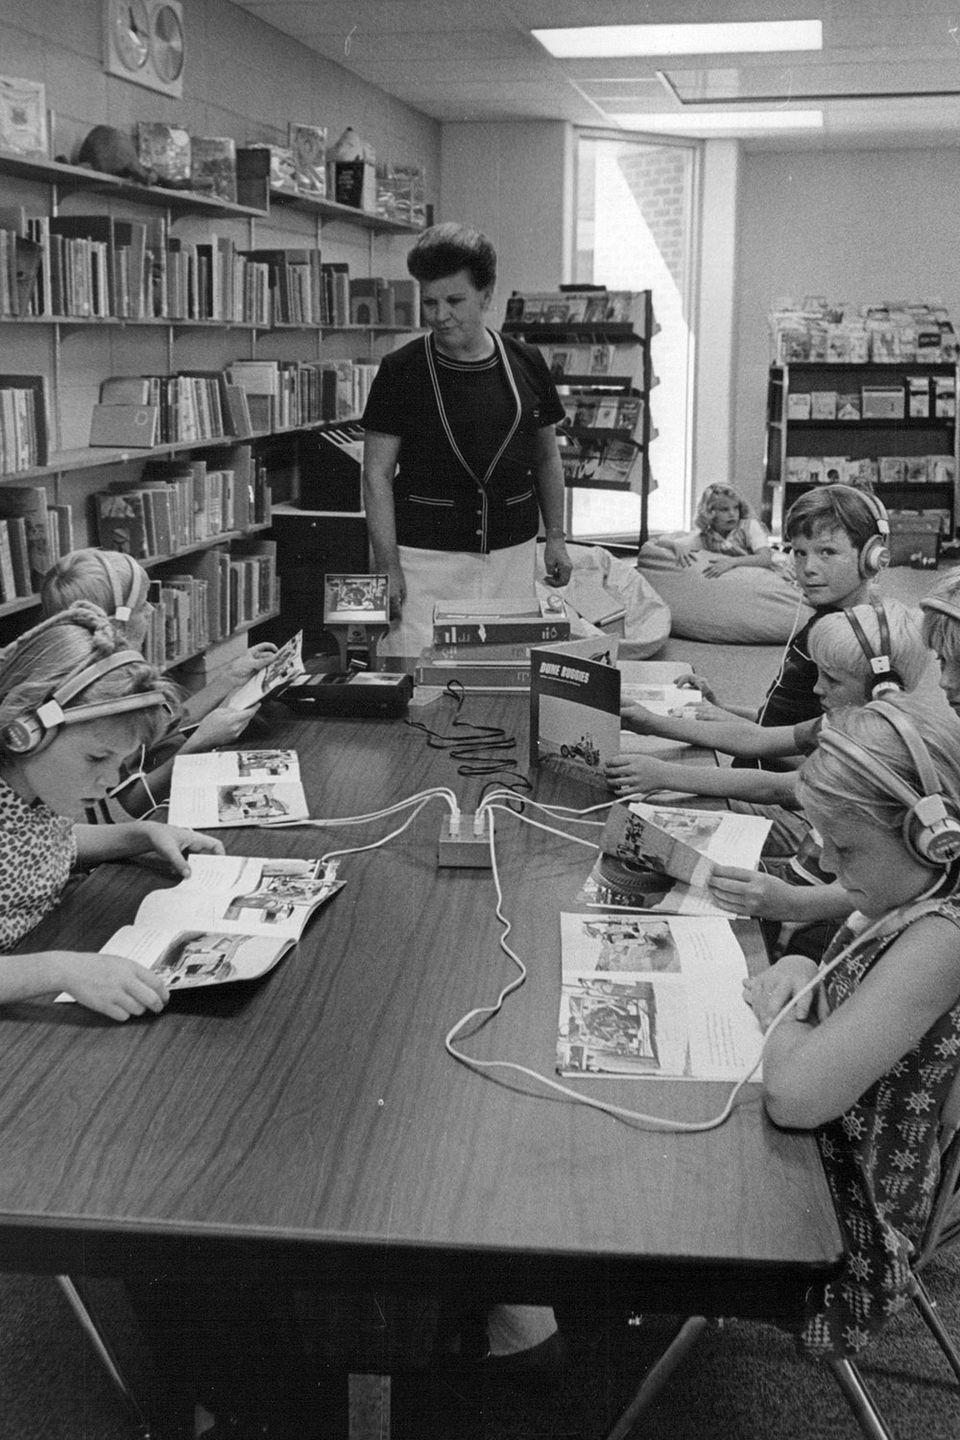 <p>A teacher watches over her students as they receive lessons from the library media center. </p>